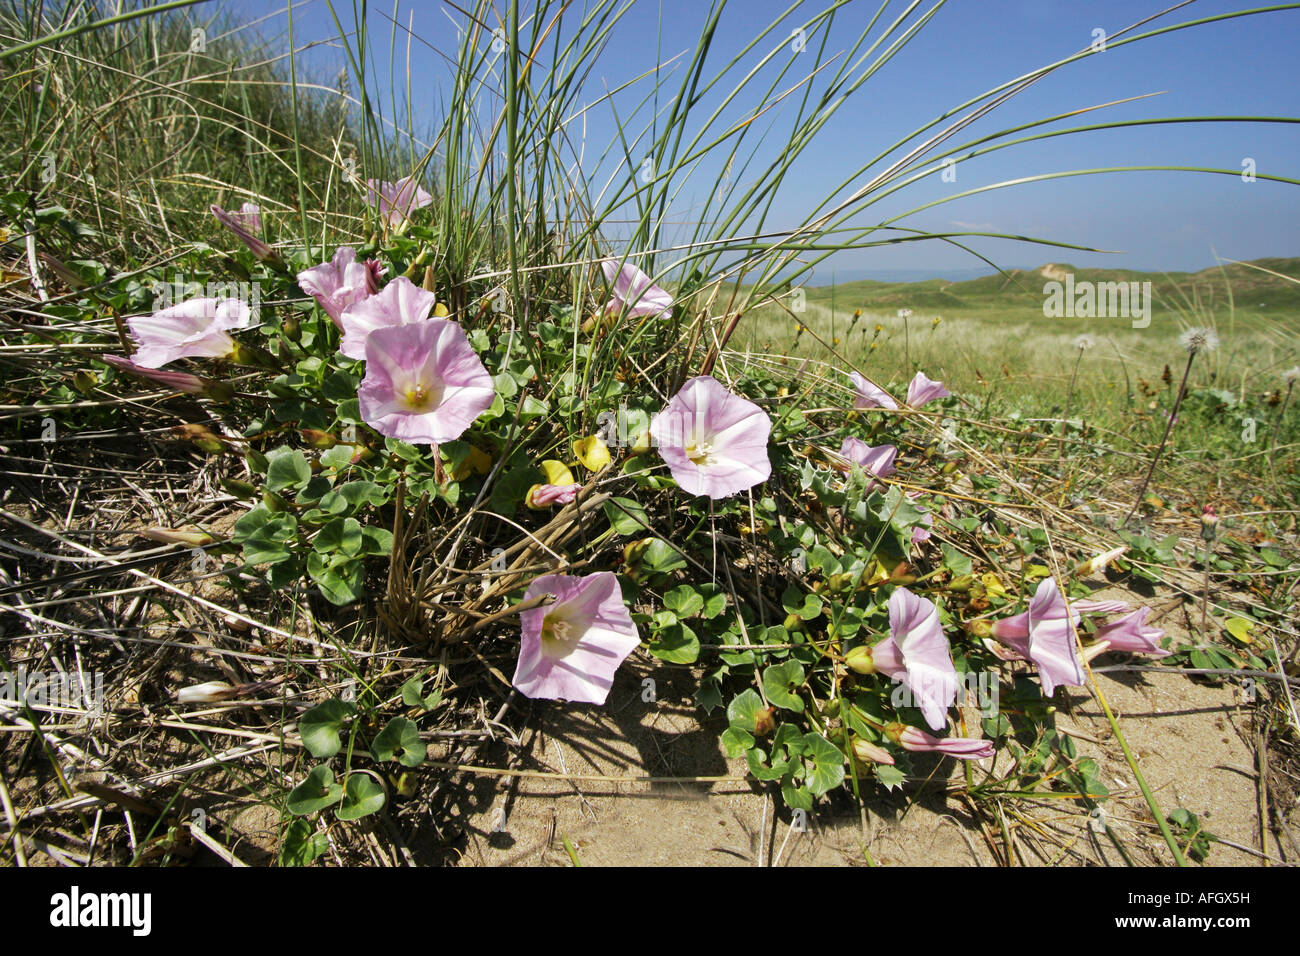 Sea Bindweed Convolvulus soldanella growing in Marram dunes at Kenfig Burrows in South Wales - Stock Image